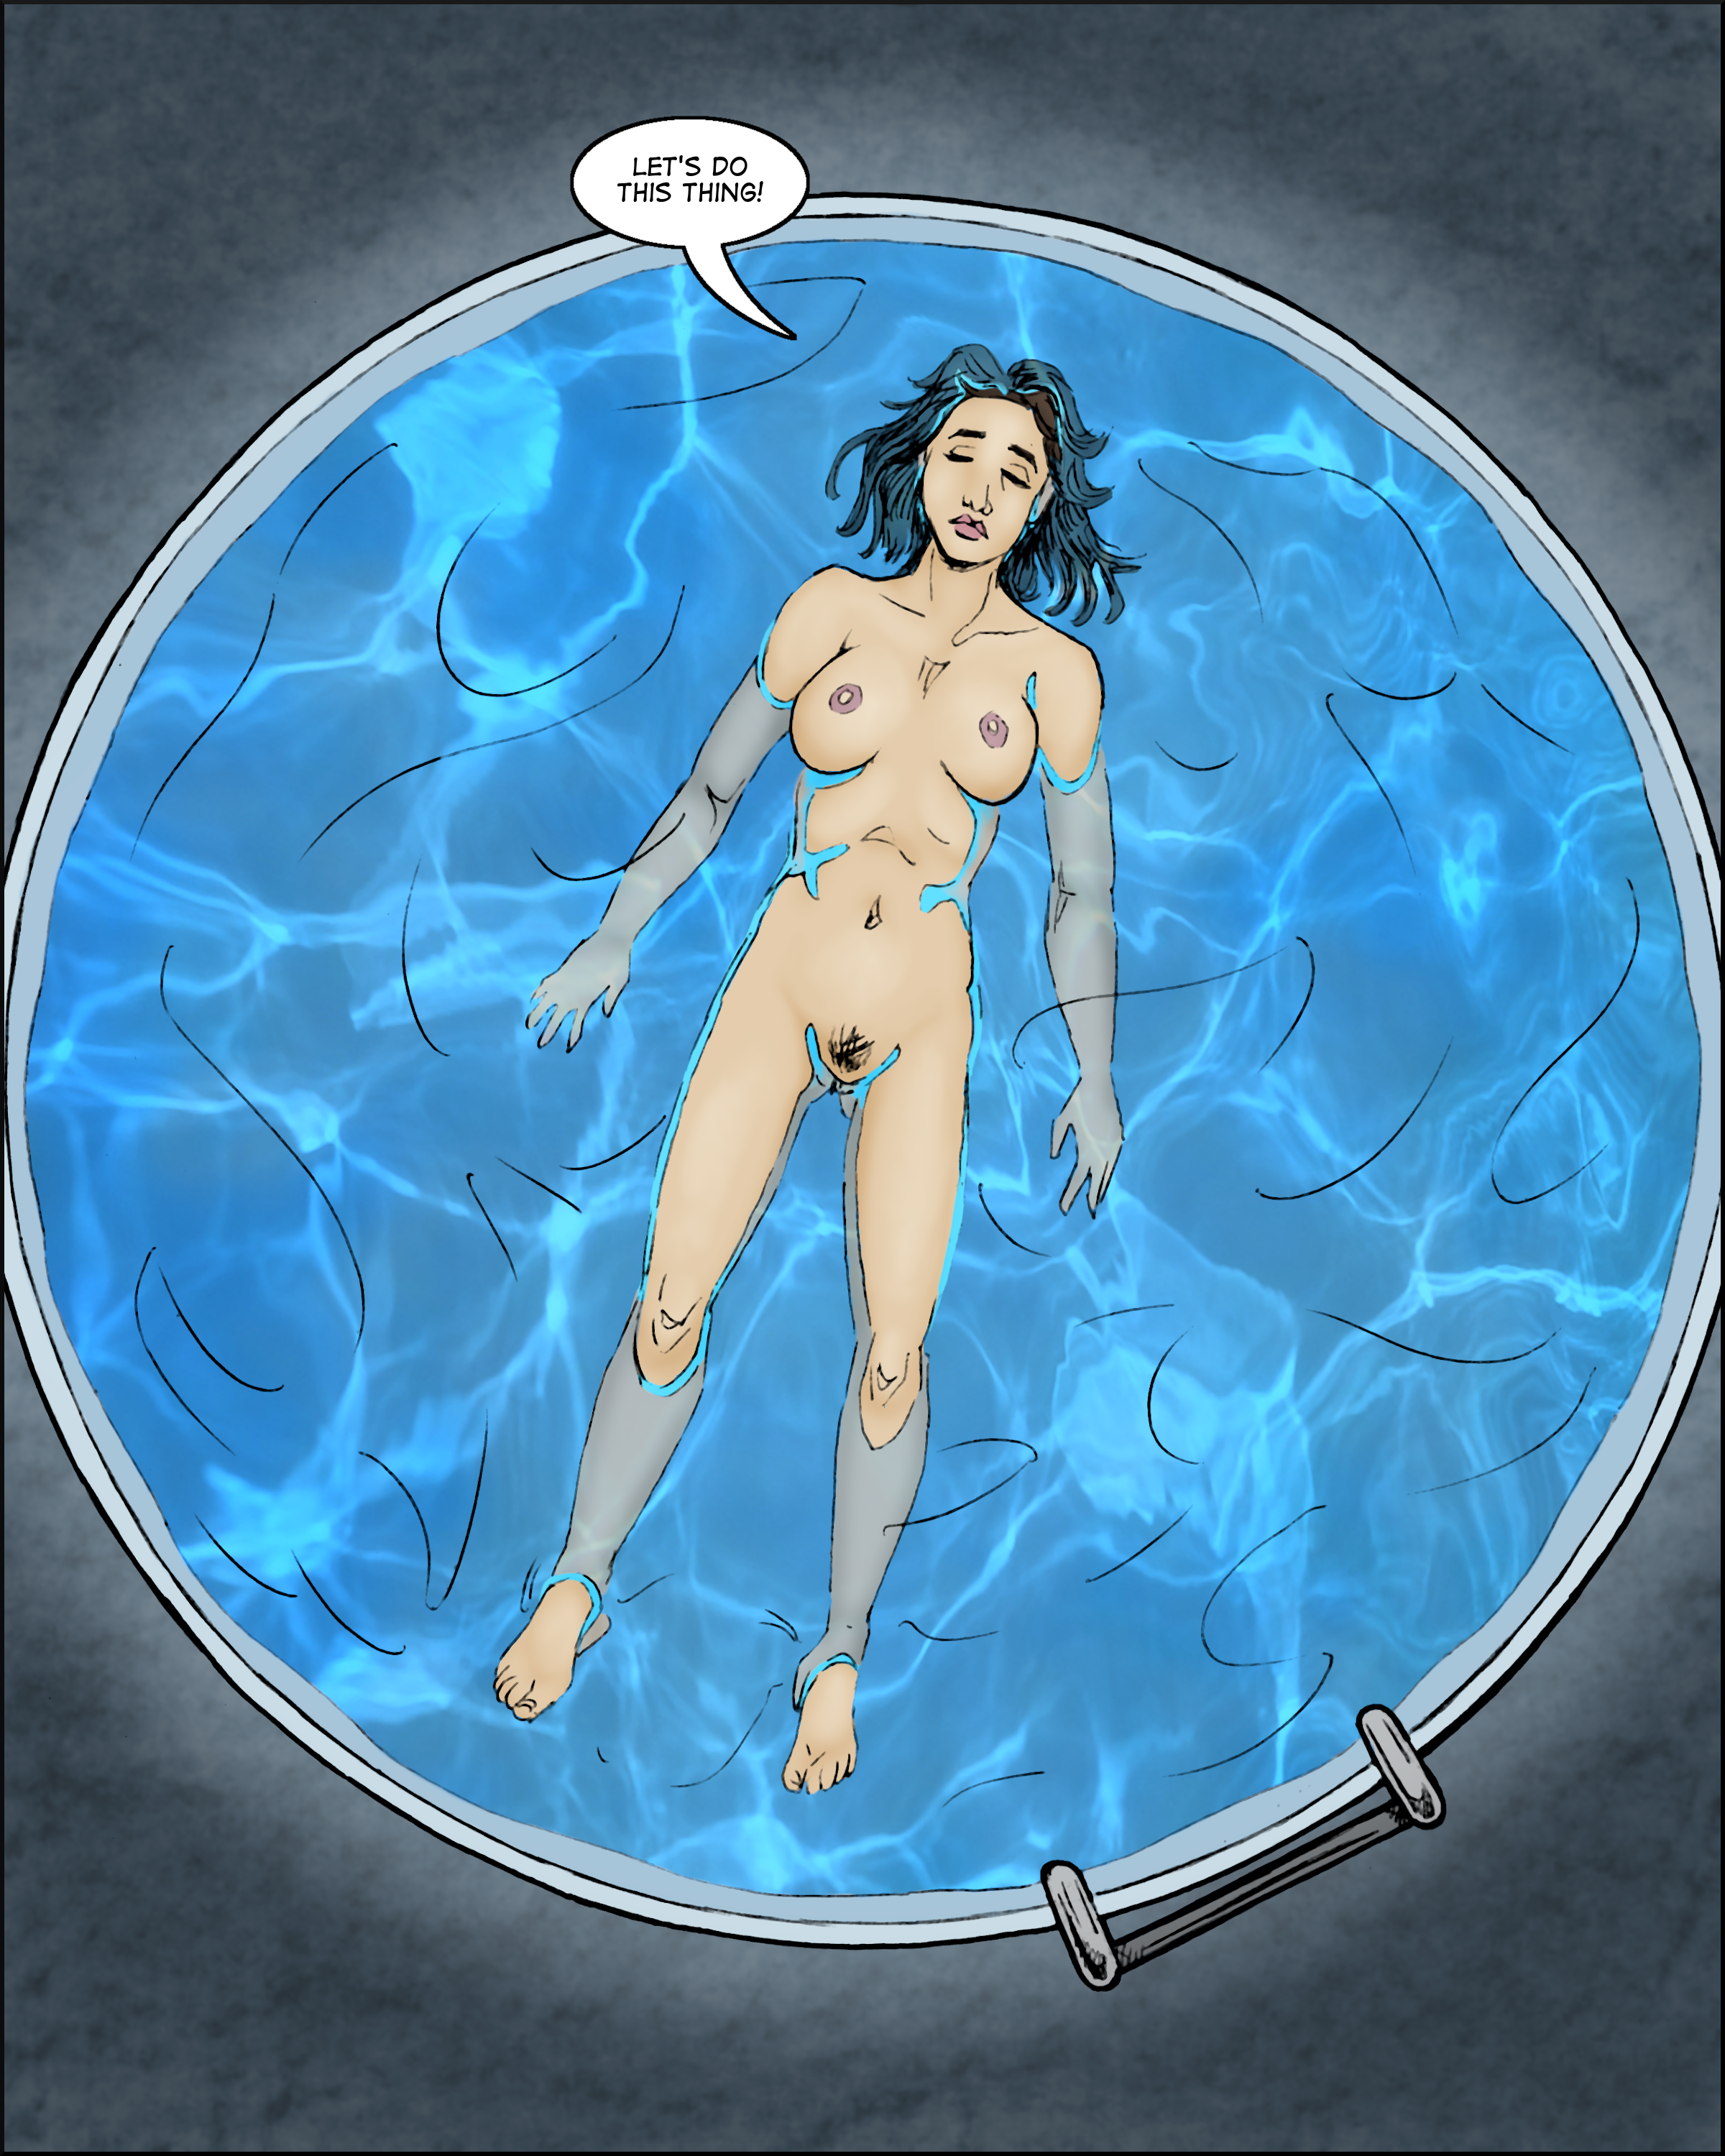 """Abigail floating blissfully in the tank.  """"Let's do this thing1"""""""